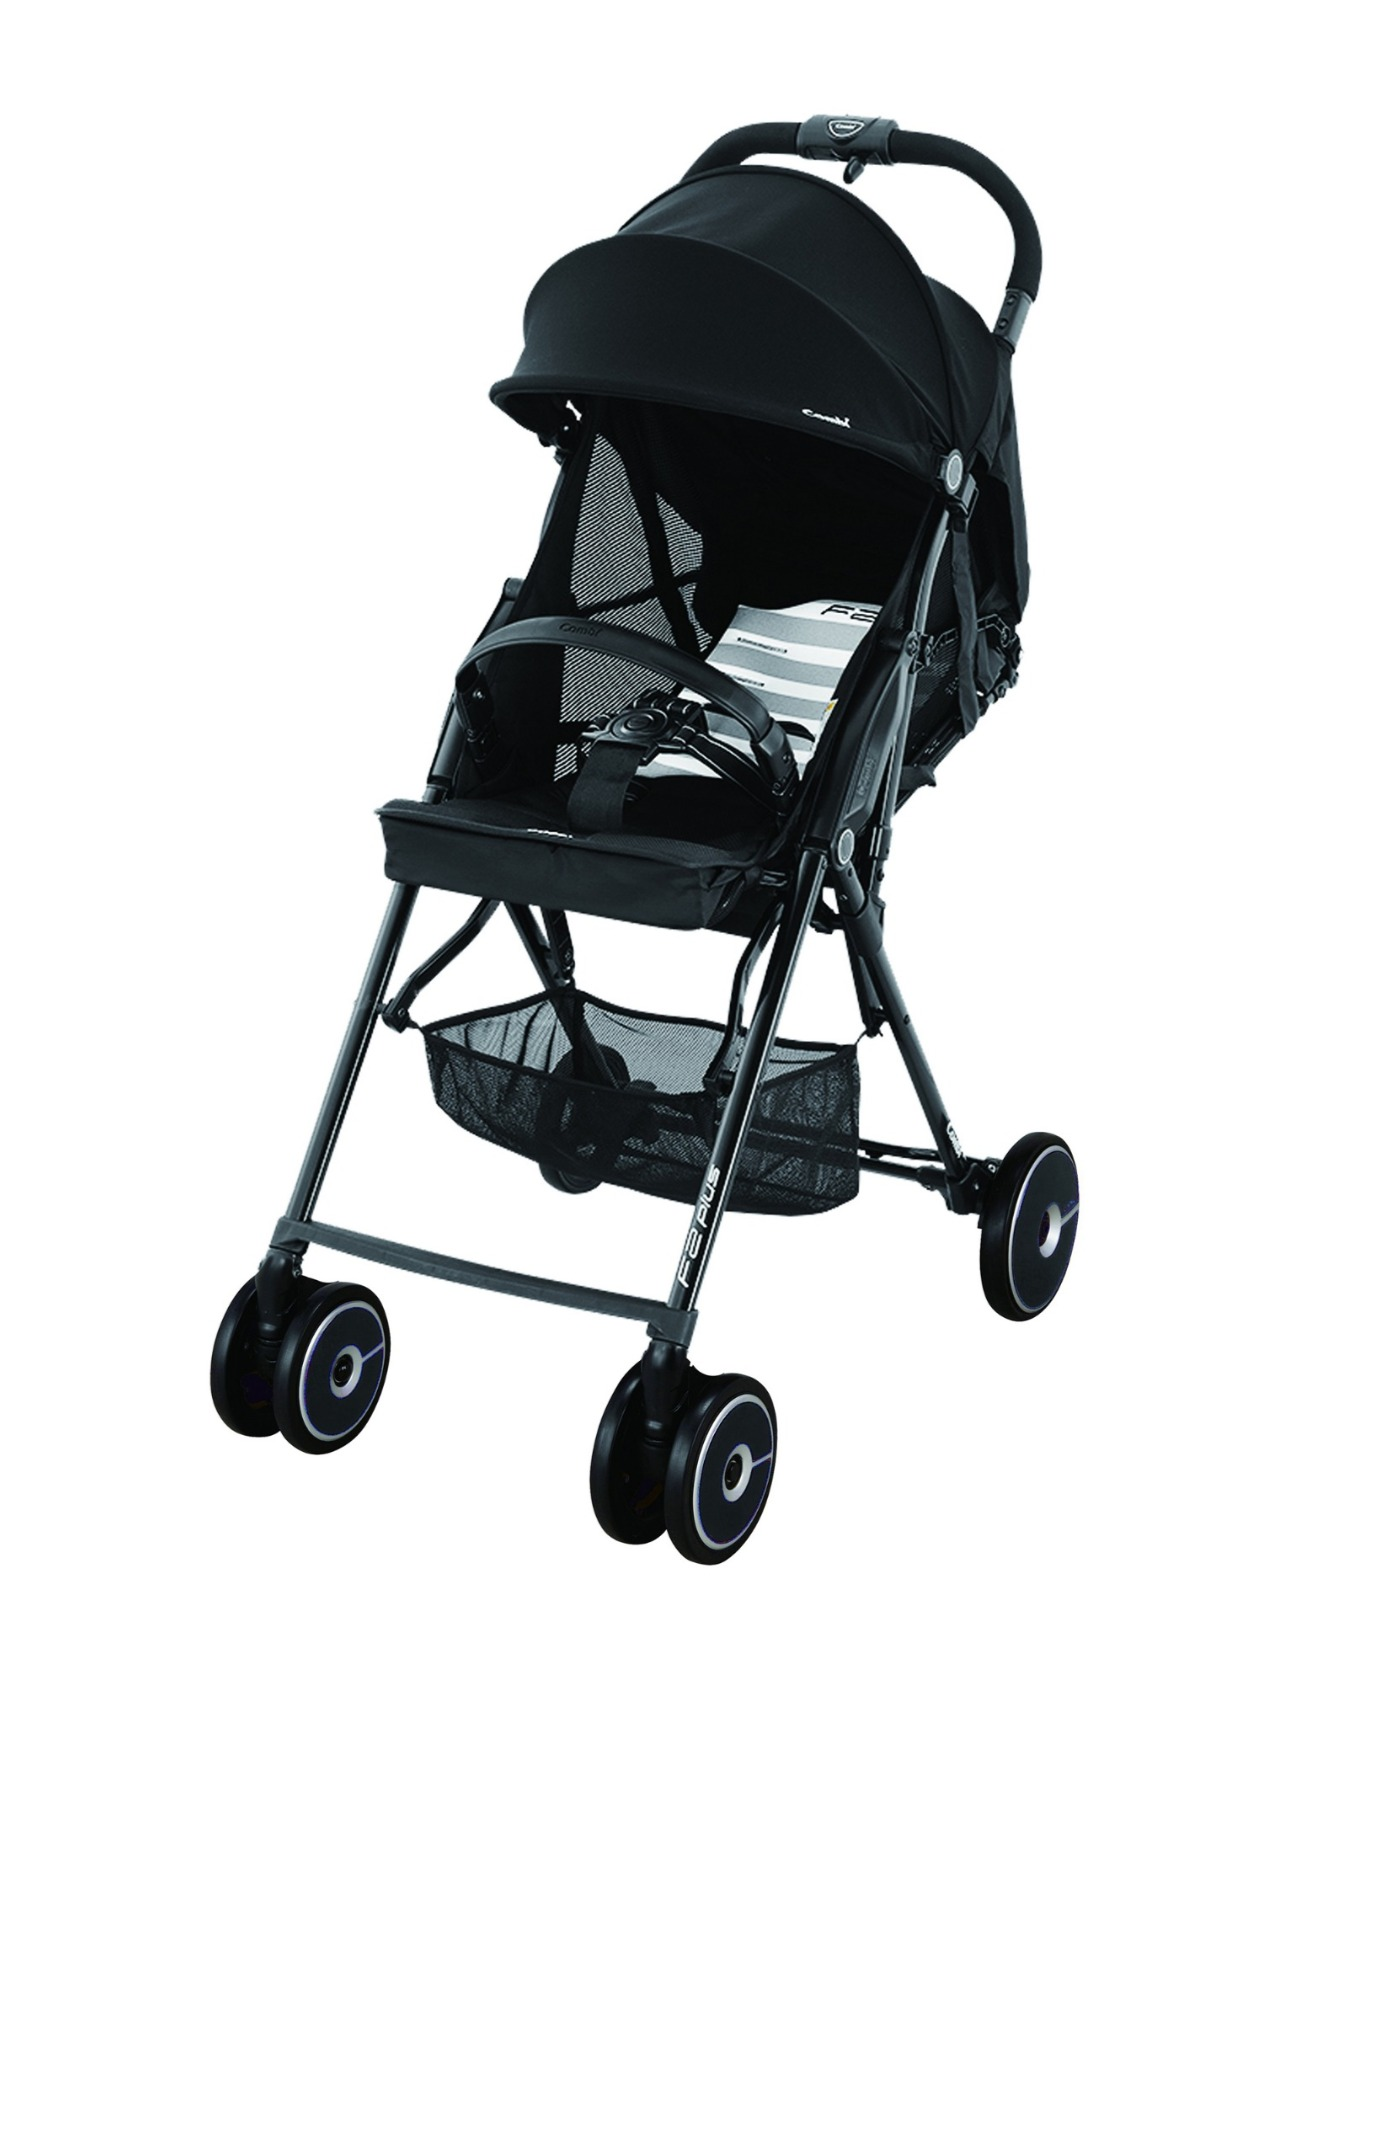 Top Lightweight Travel System Strollers Combi Infant Car Seats Baby Strollers